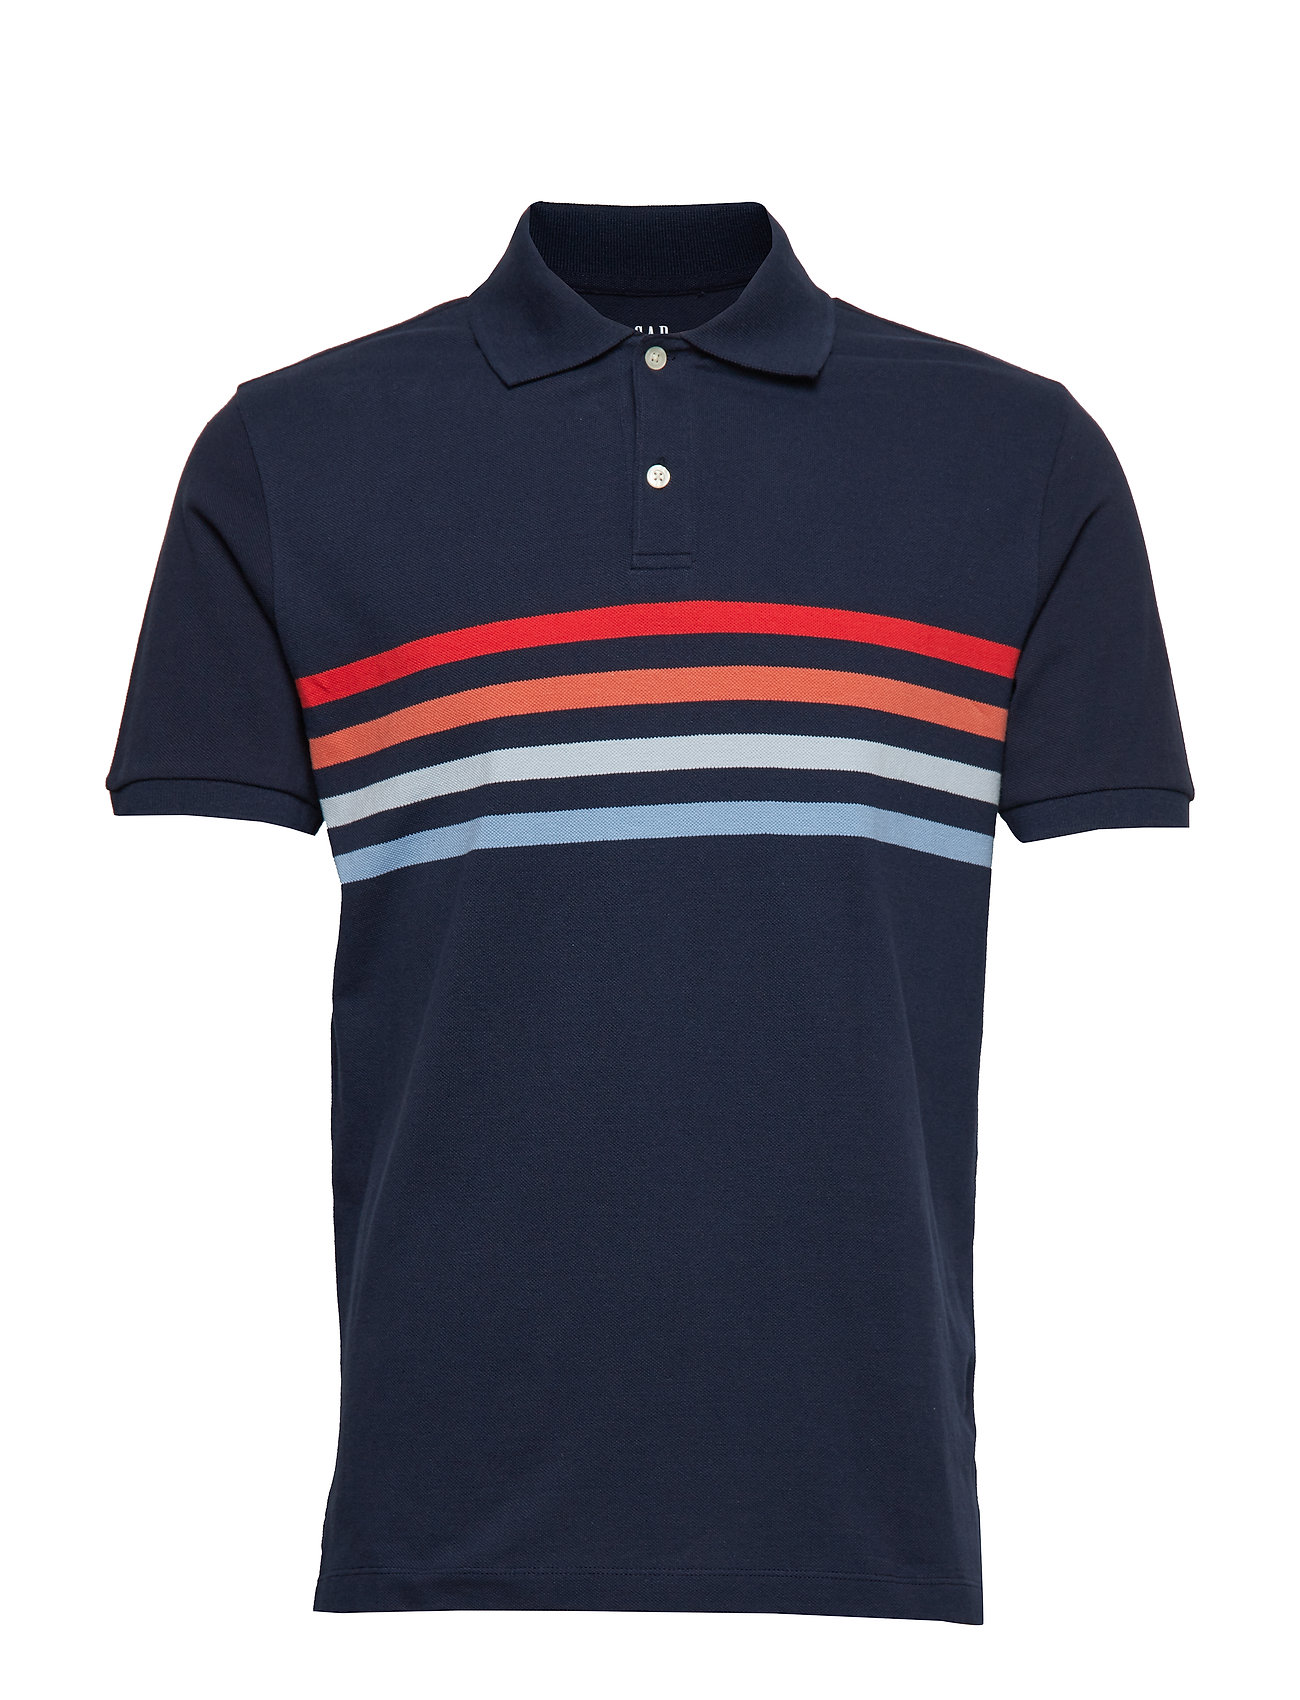 GAP PK POLO STRIPE Ögrönlar